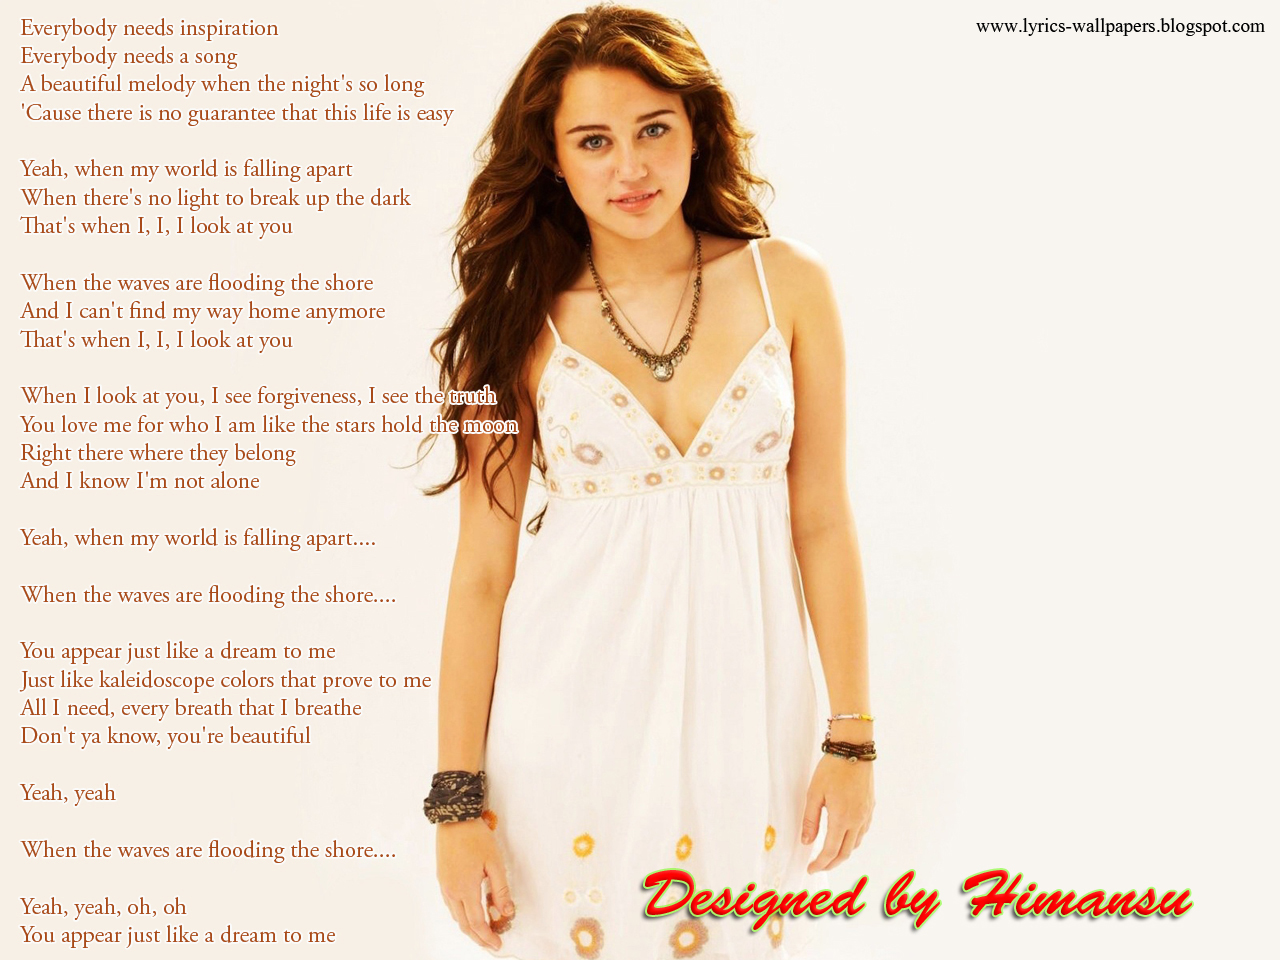 Lyrics Wallpapers: Miley Cyrus - When I Look At You